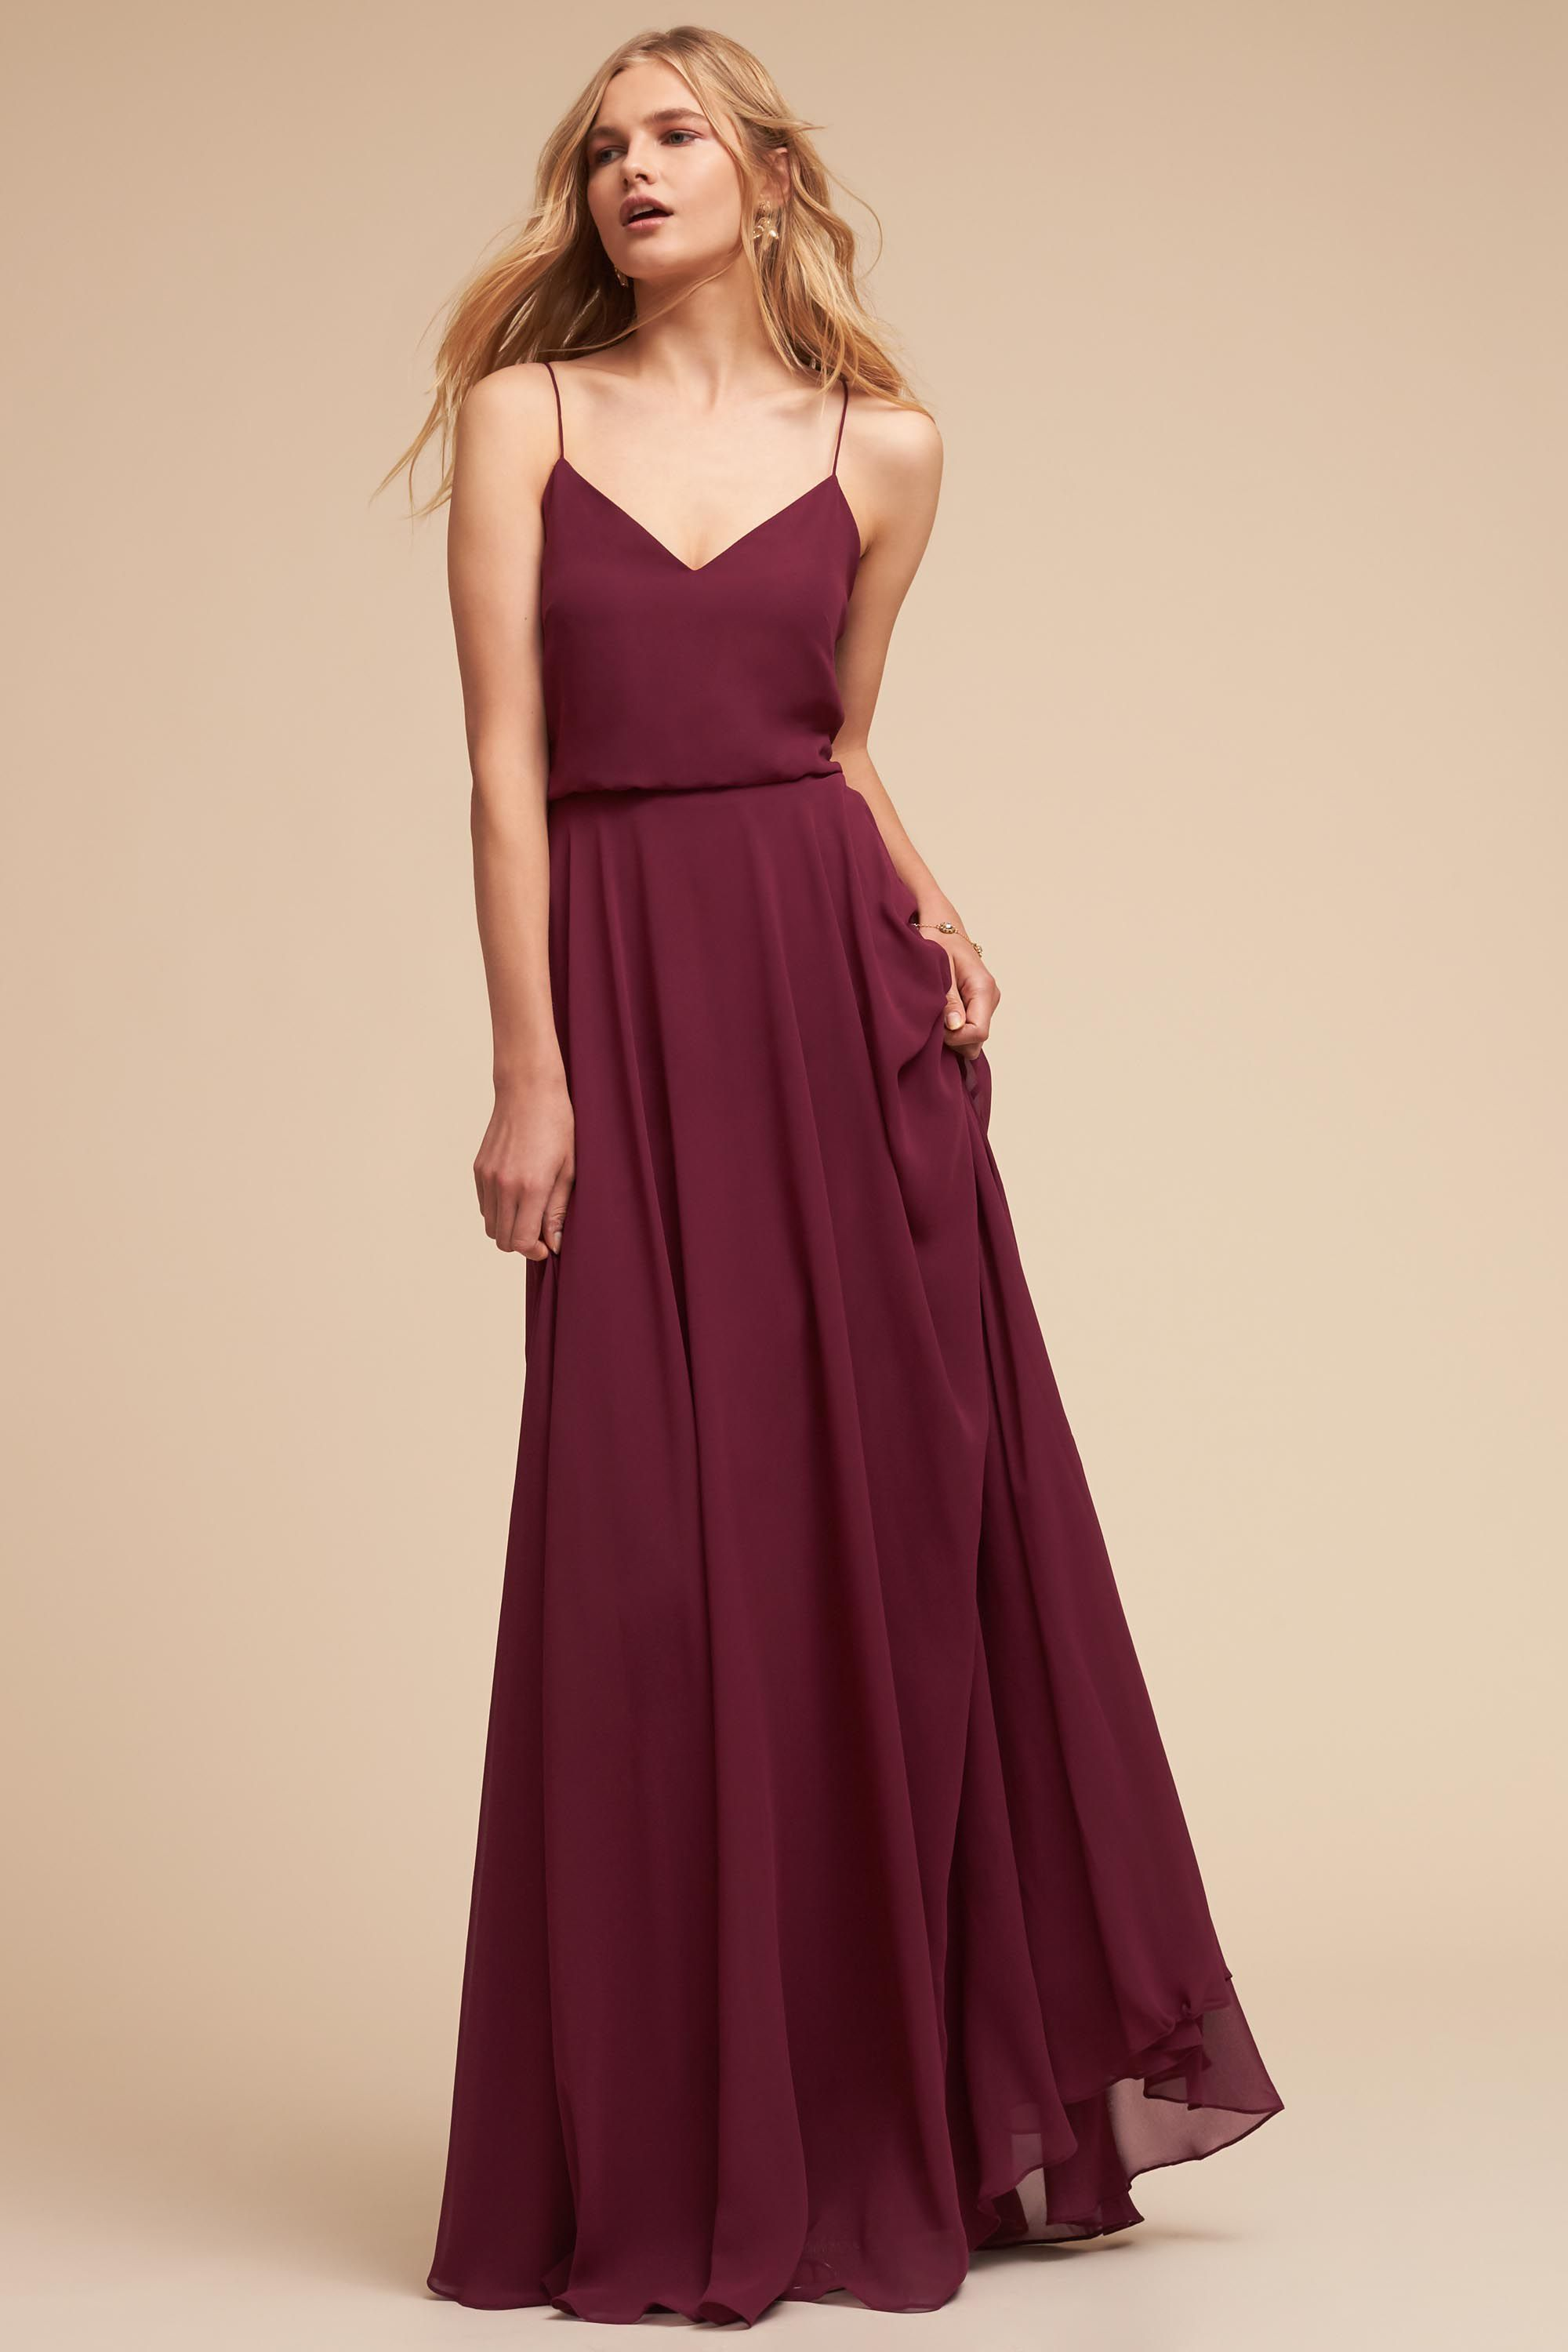 670f01f8712a Inesse Dress from @BHLDN | Bridesmaids | Bridesmaid dresses, Dresses ...